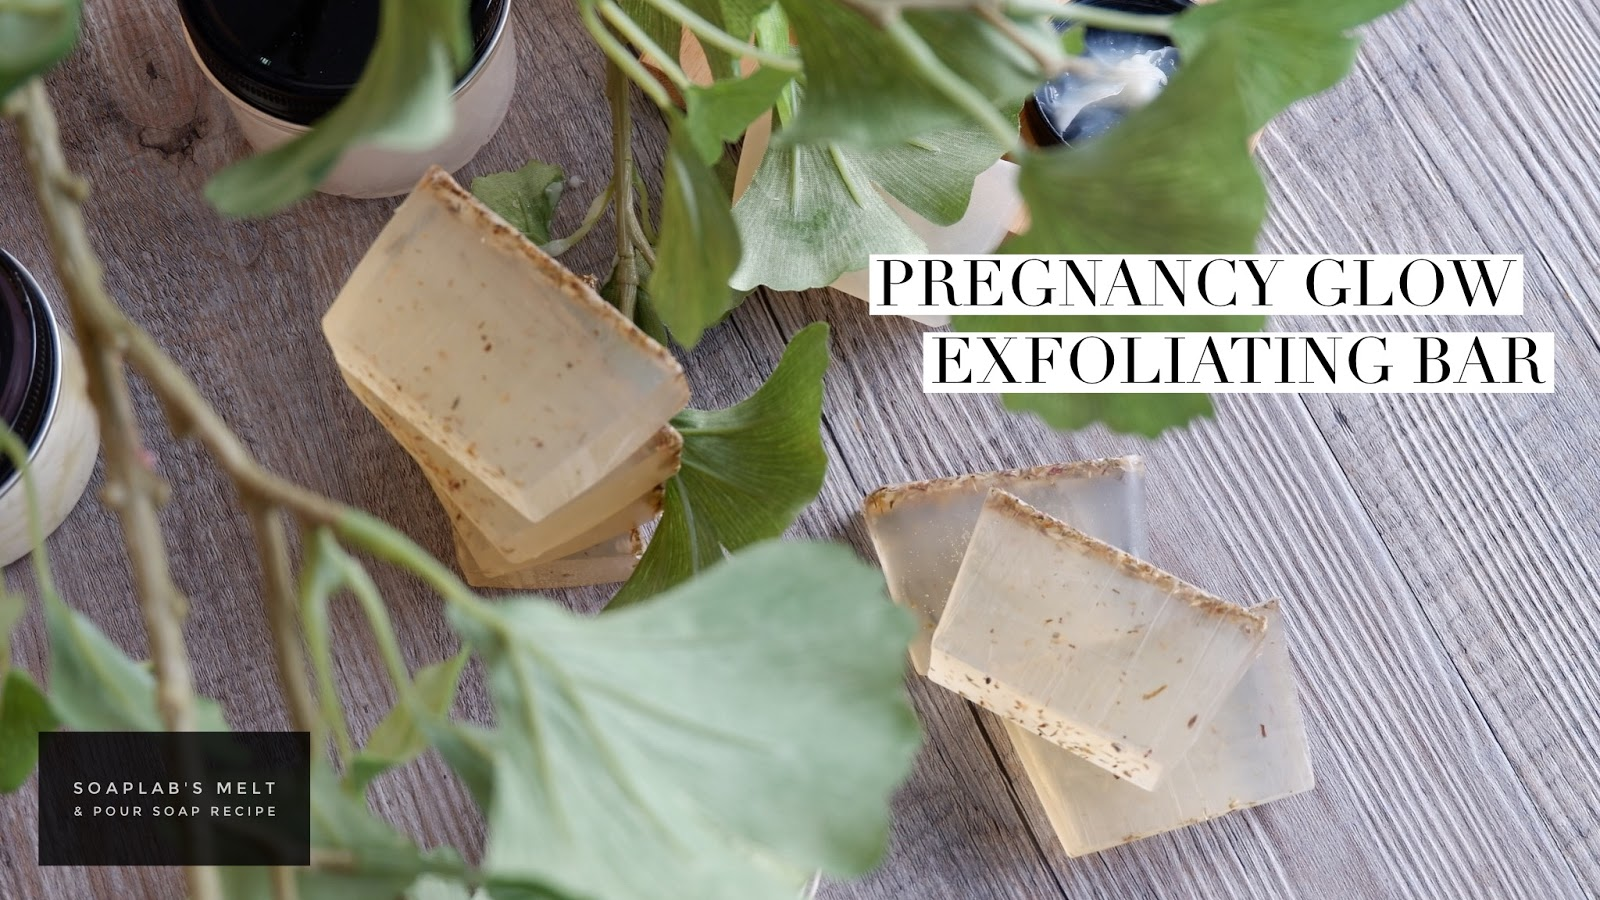 How To Make Soap For Pregnancy (Glow Exfoliating Bar)